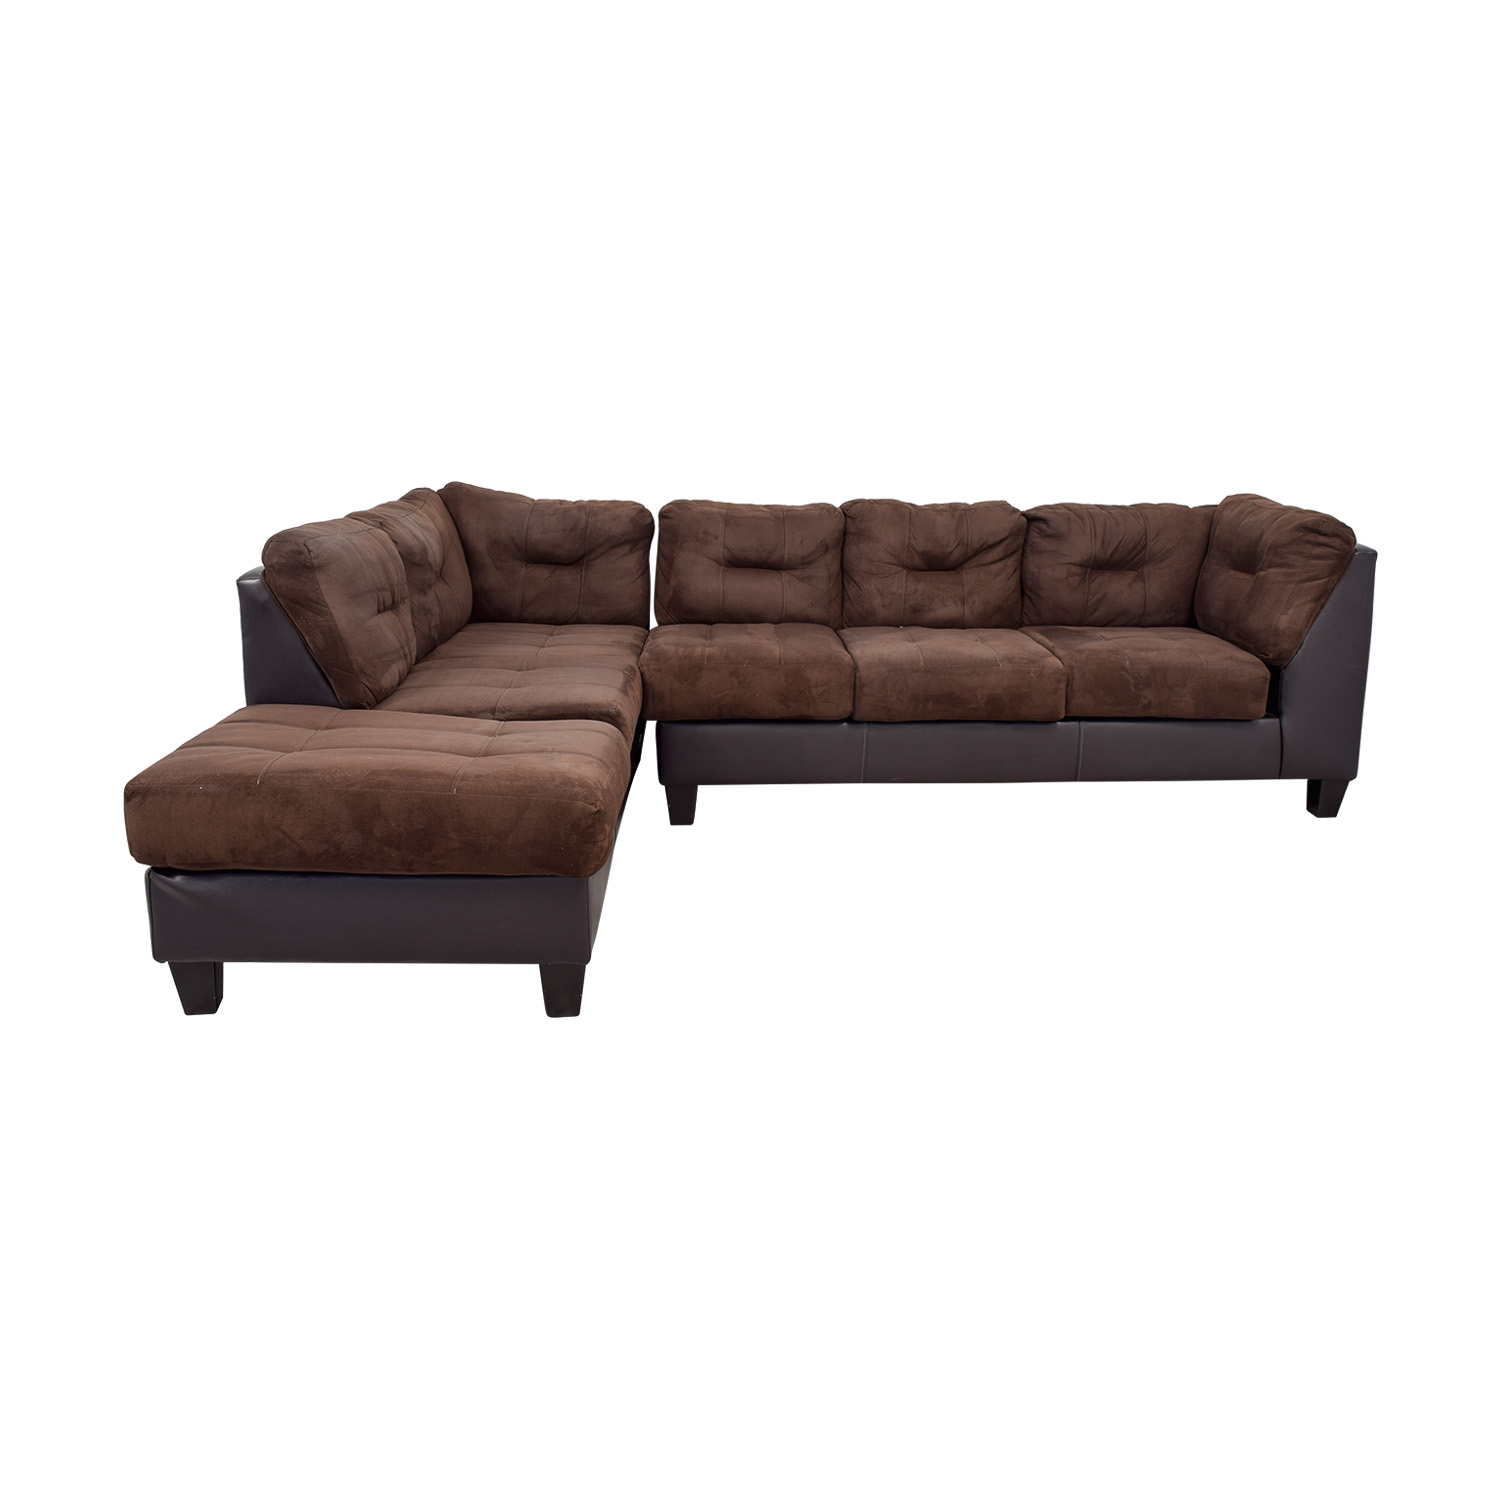 Raymour & Flanigan Raymour & Flanigan Brown Tufted  Sectional with Ottoman price